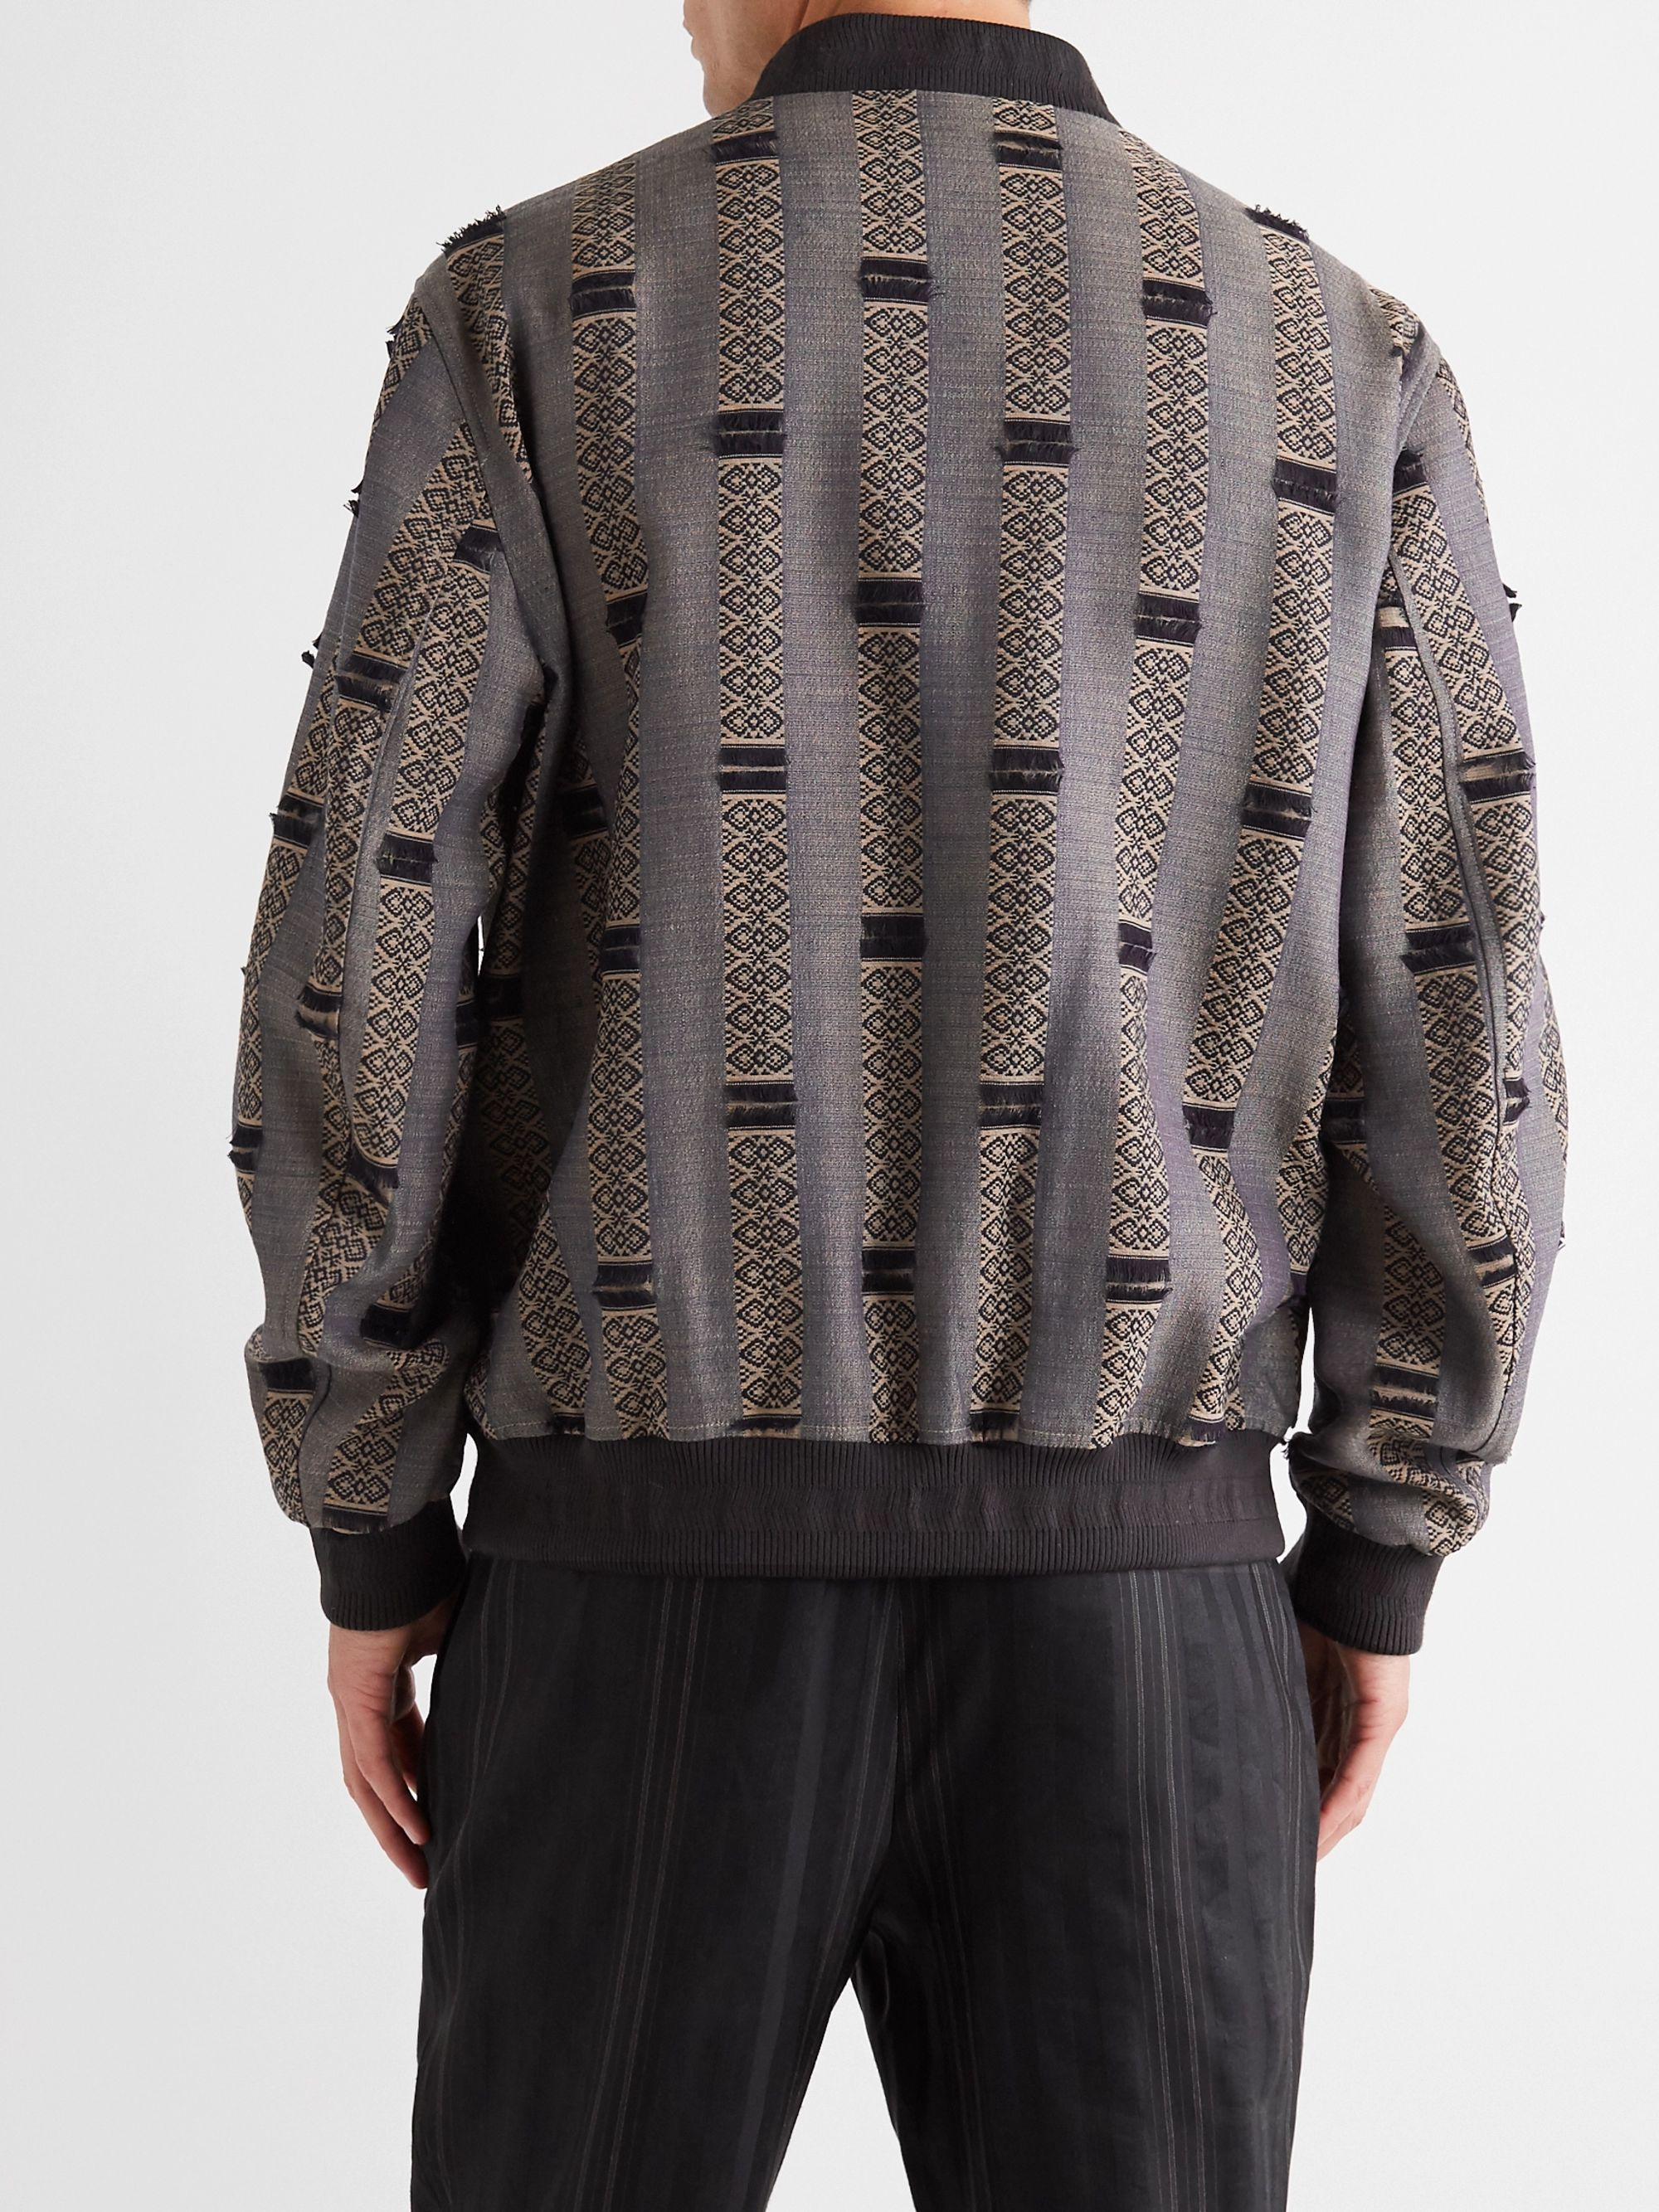 ETRO Wool and Silk-Blend Jacquard Bomber Jacket